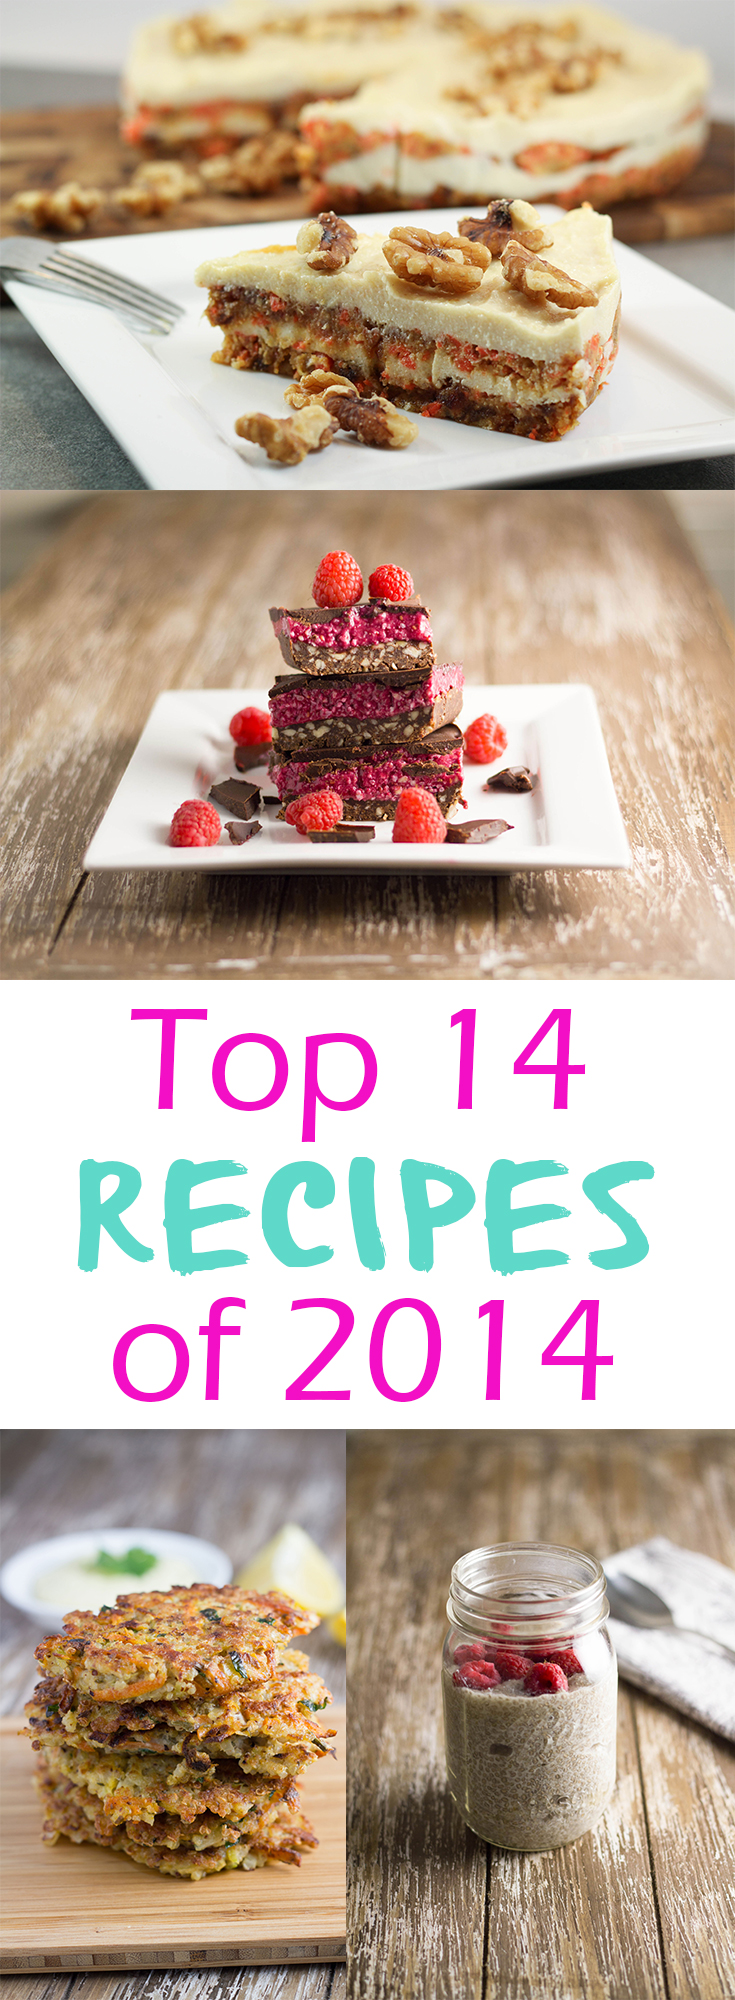 Top-14-Recipes-2014